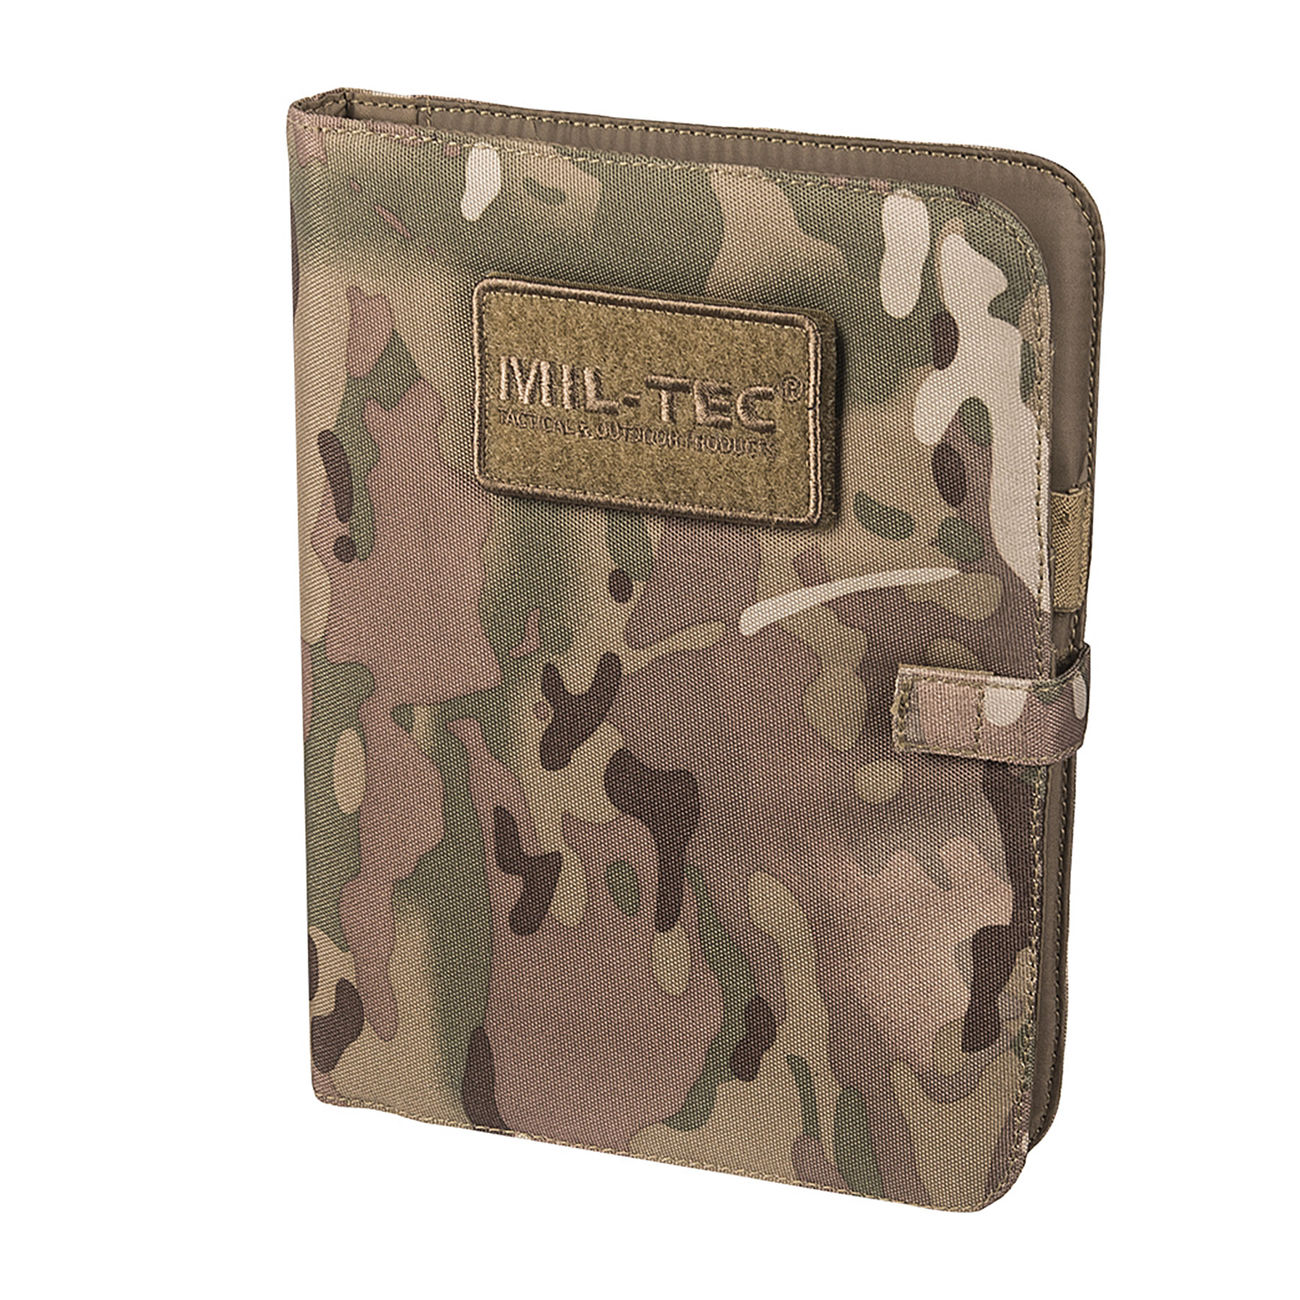 Mil-Tec Tactical Notizbuch Medium multitarn 0